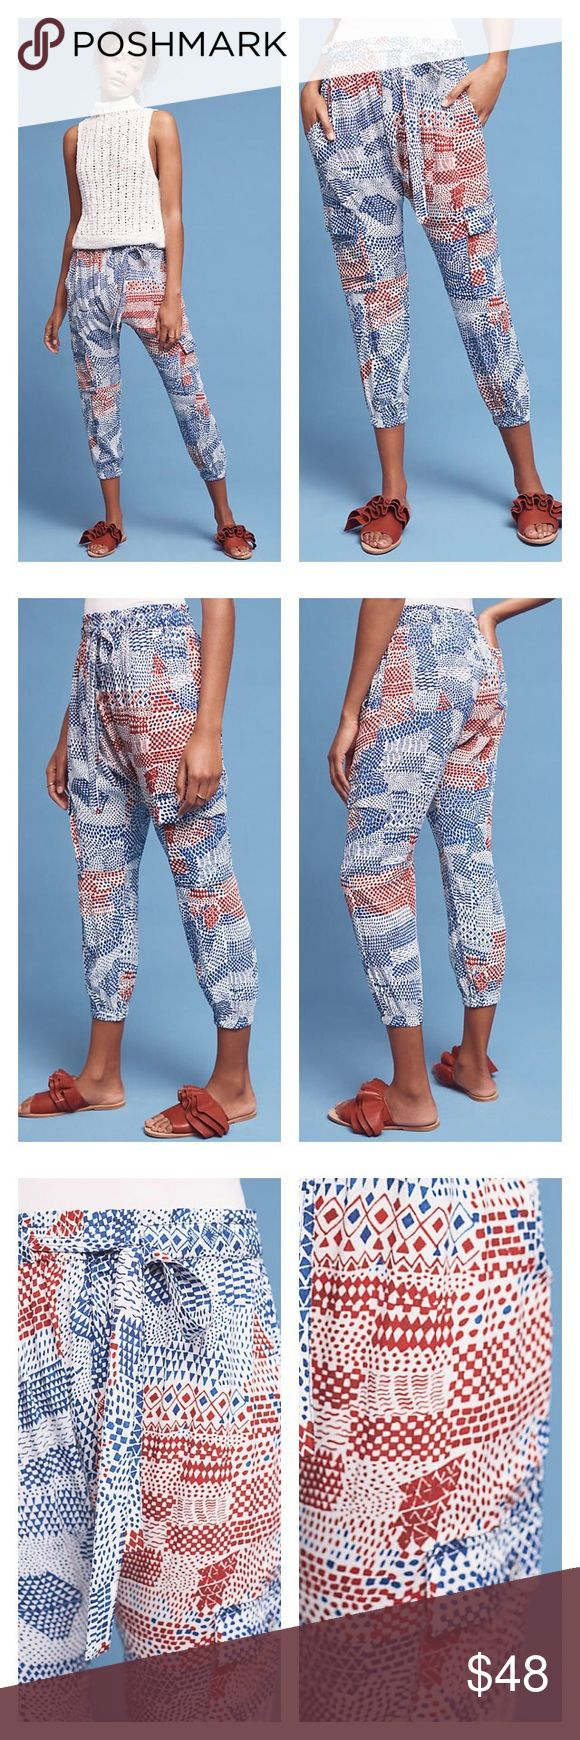 """NWT Anthropologie Harem-Style Joggers Loosely defined cargo joggers crafted from super-soft materials in a printed design. These are amazing!!! All the fabulous reviews say it all 🤗 By Hei Hei. ⚡️Viscose ⚡️Drop rise ⚡️Front slant, back patch pockets ⚡️Pull-on styling ⚡️Hand wash ⚡️24"""" inseam Anthropologie Pants Track Pants & Joggers"""